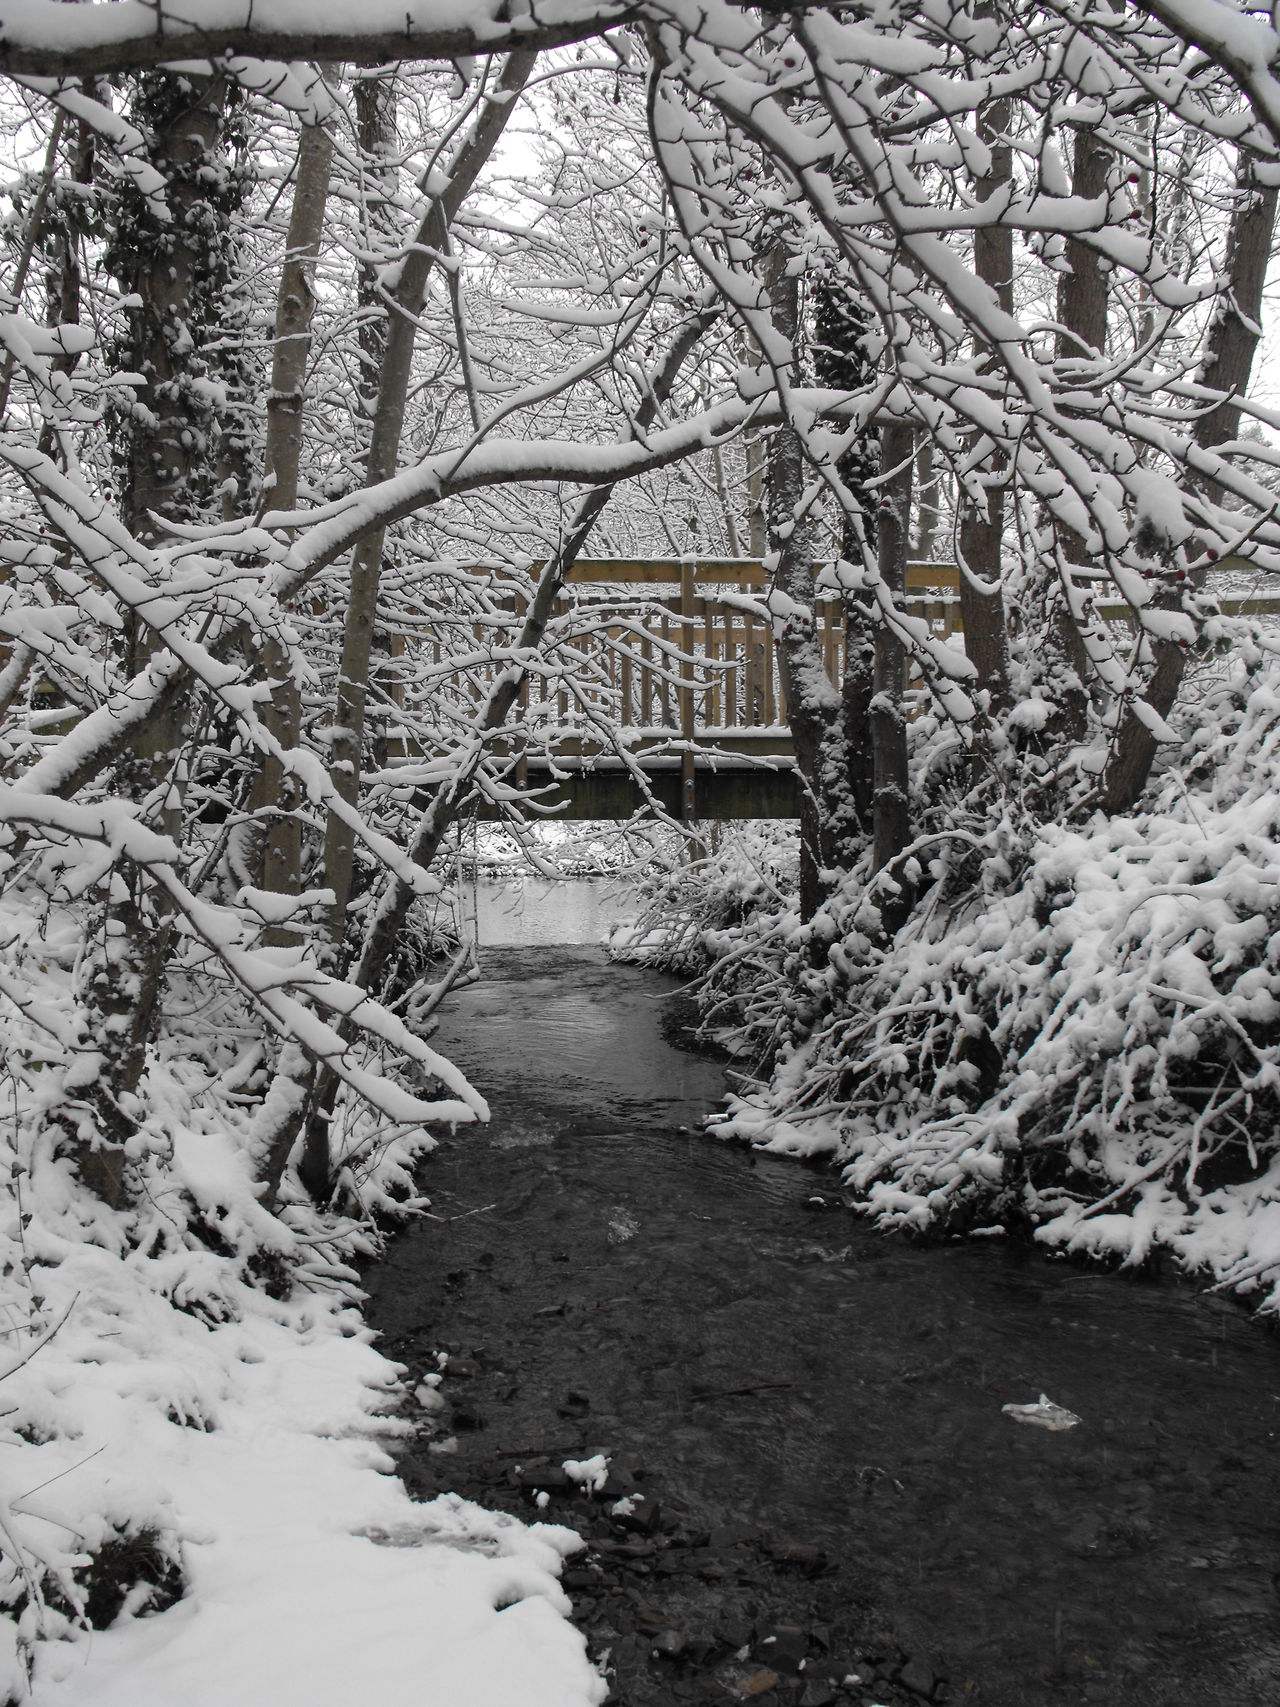 New bridge Beauty In Nature Branch Bridge Bridge - Man Made Structure Cerenity Contemplation Day Nature Newtown Powys No People Outdoors Park Peace River Scenics Silence Snow Stream The Way Forward Tranquility Tree Wales Winter Winter Wonderland Wooden Bridge